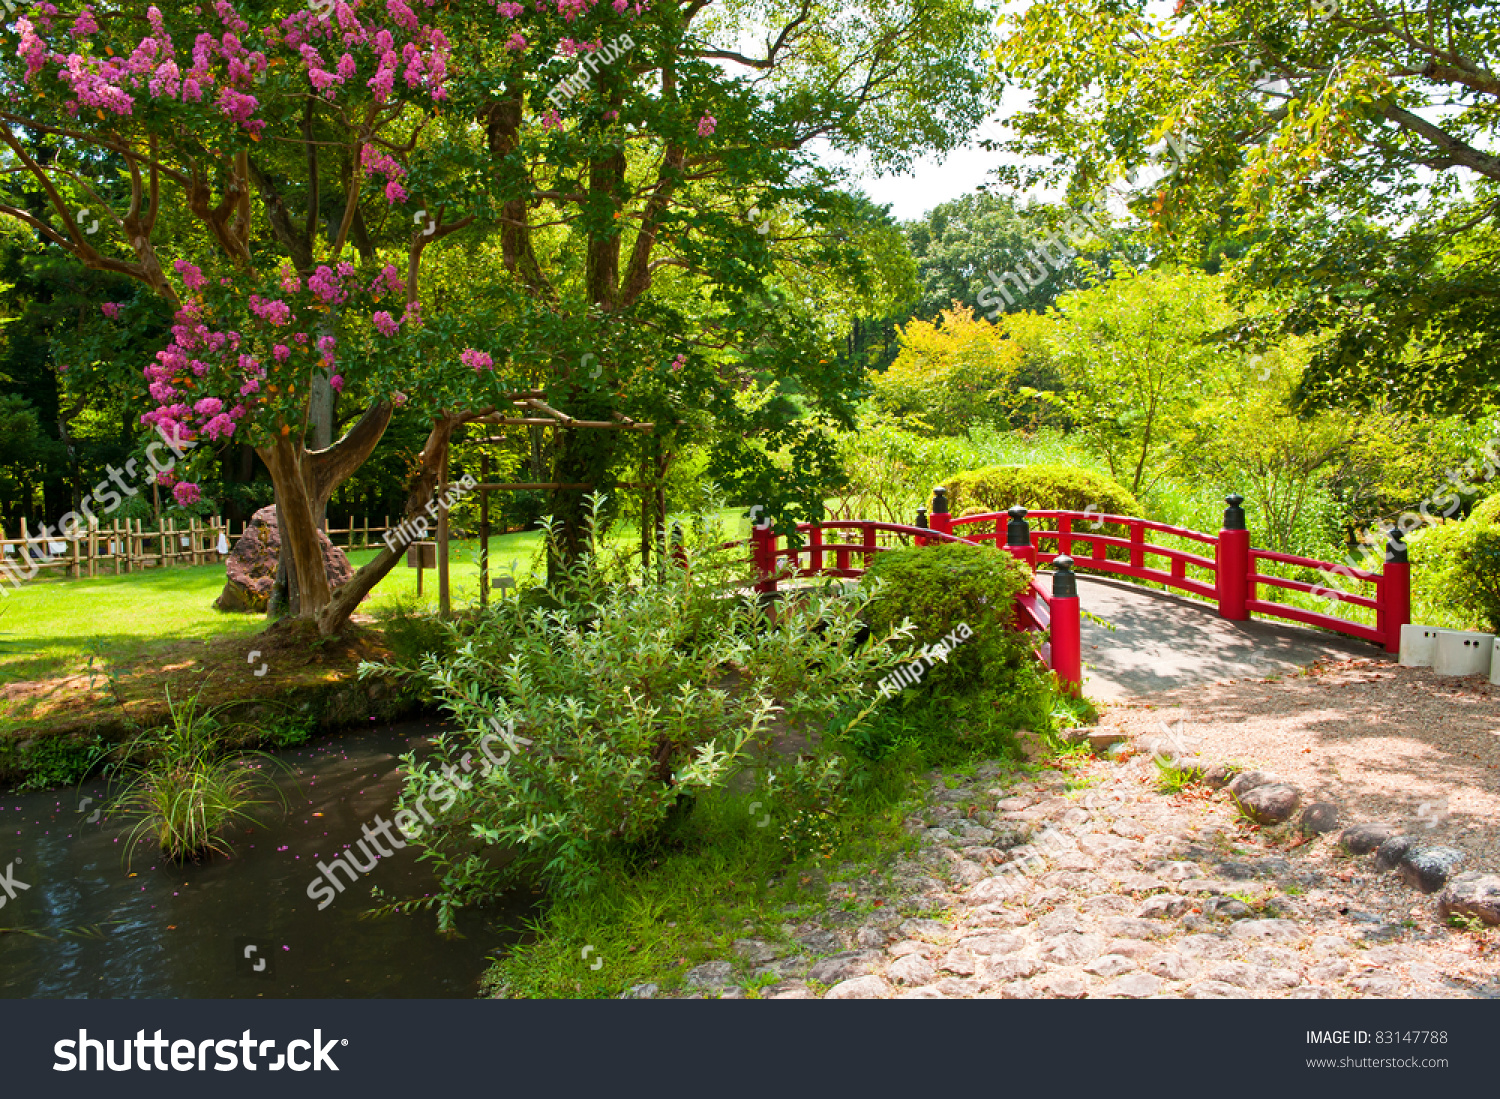 beautiful japanese garden with a lake and a red bridge in the front - Red Japanese Garden Bridge